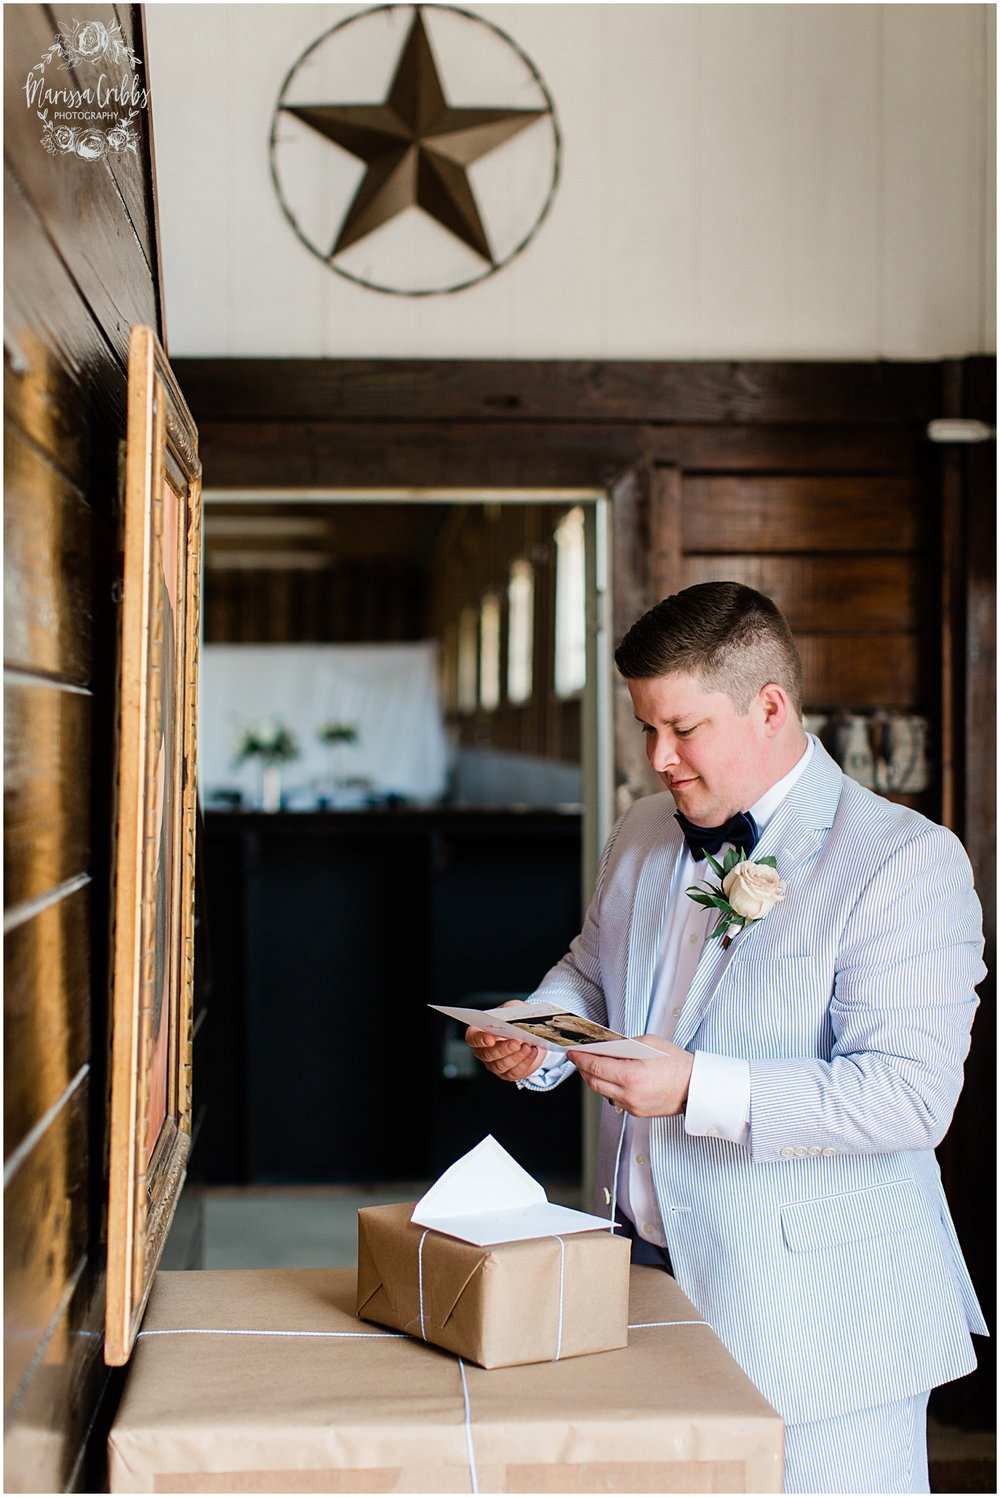 ANDREA & MICHAEL WEDDING | HICKORY CREEK RANCH | MARISSA CRIBBS PHOTOGRAPHY_4835.jpg